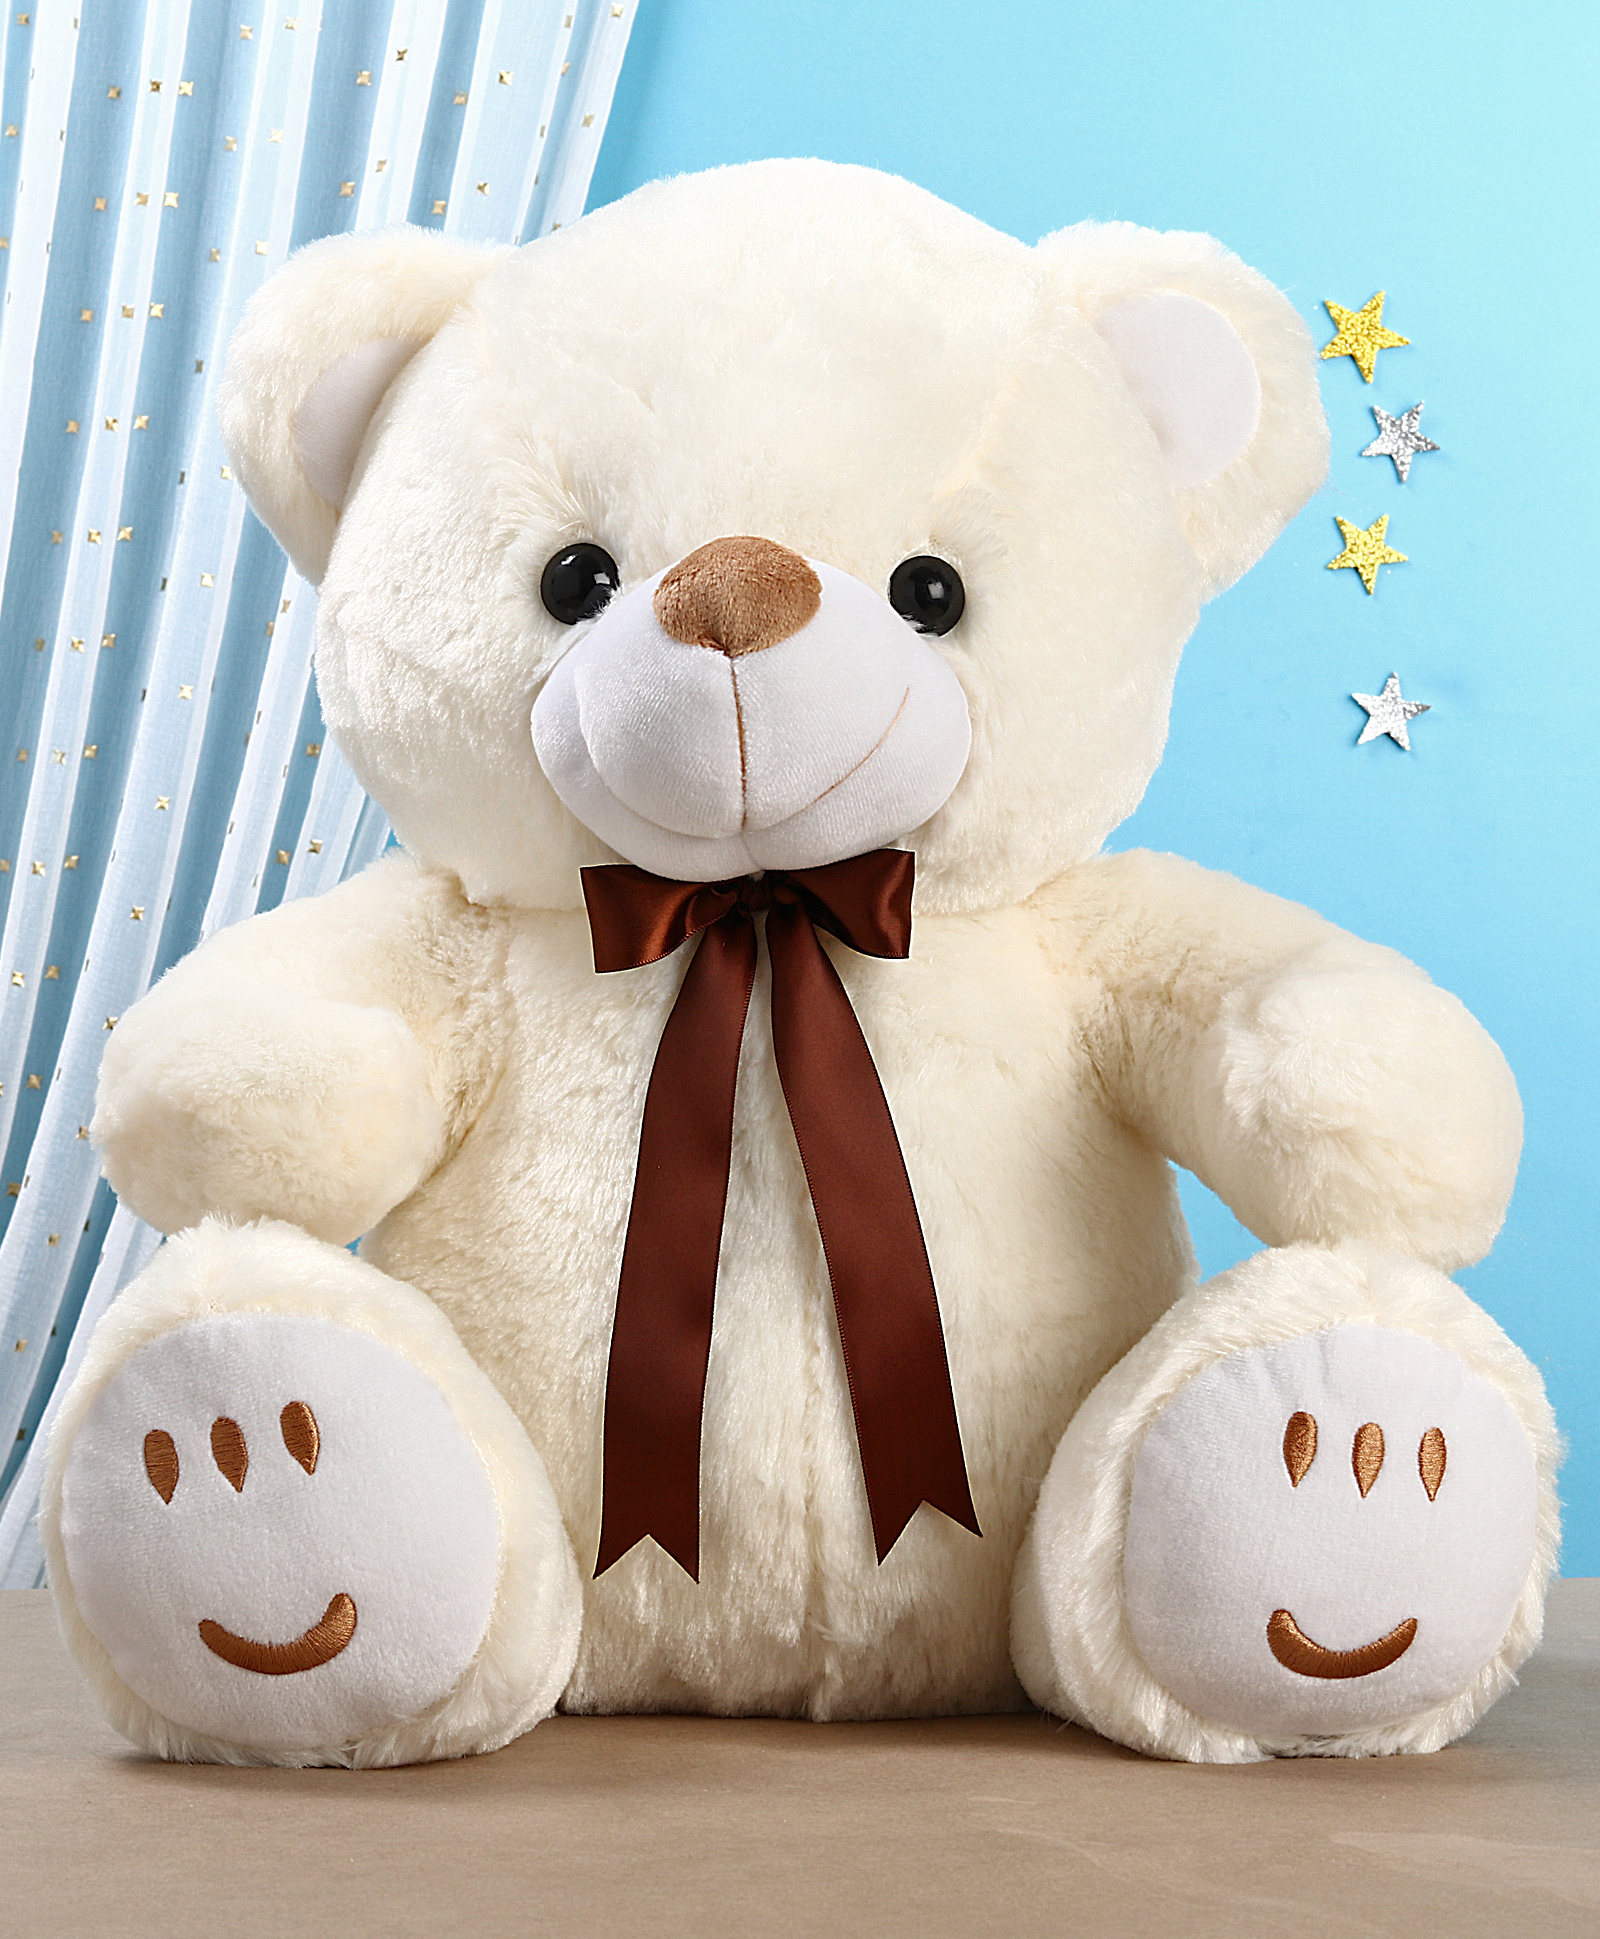 Cute Lamb Stuffed Animals, Teddy Bear Soft Toy With Bow Cream Height 50 Cm Online India Buy Soft Toys For 3 8 Years At Firstcry Com 3278806